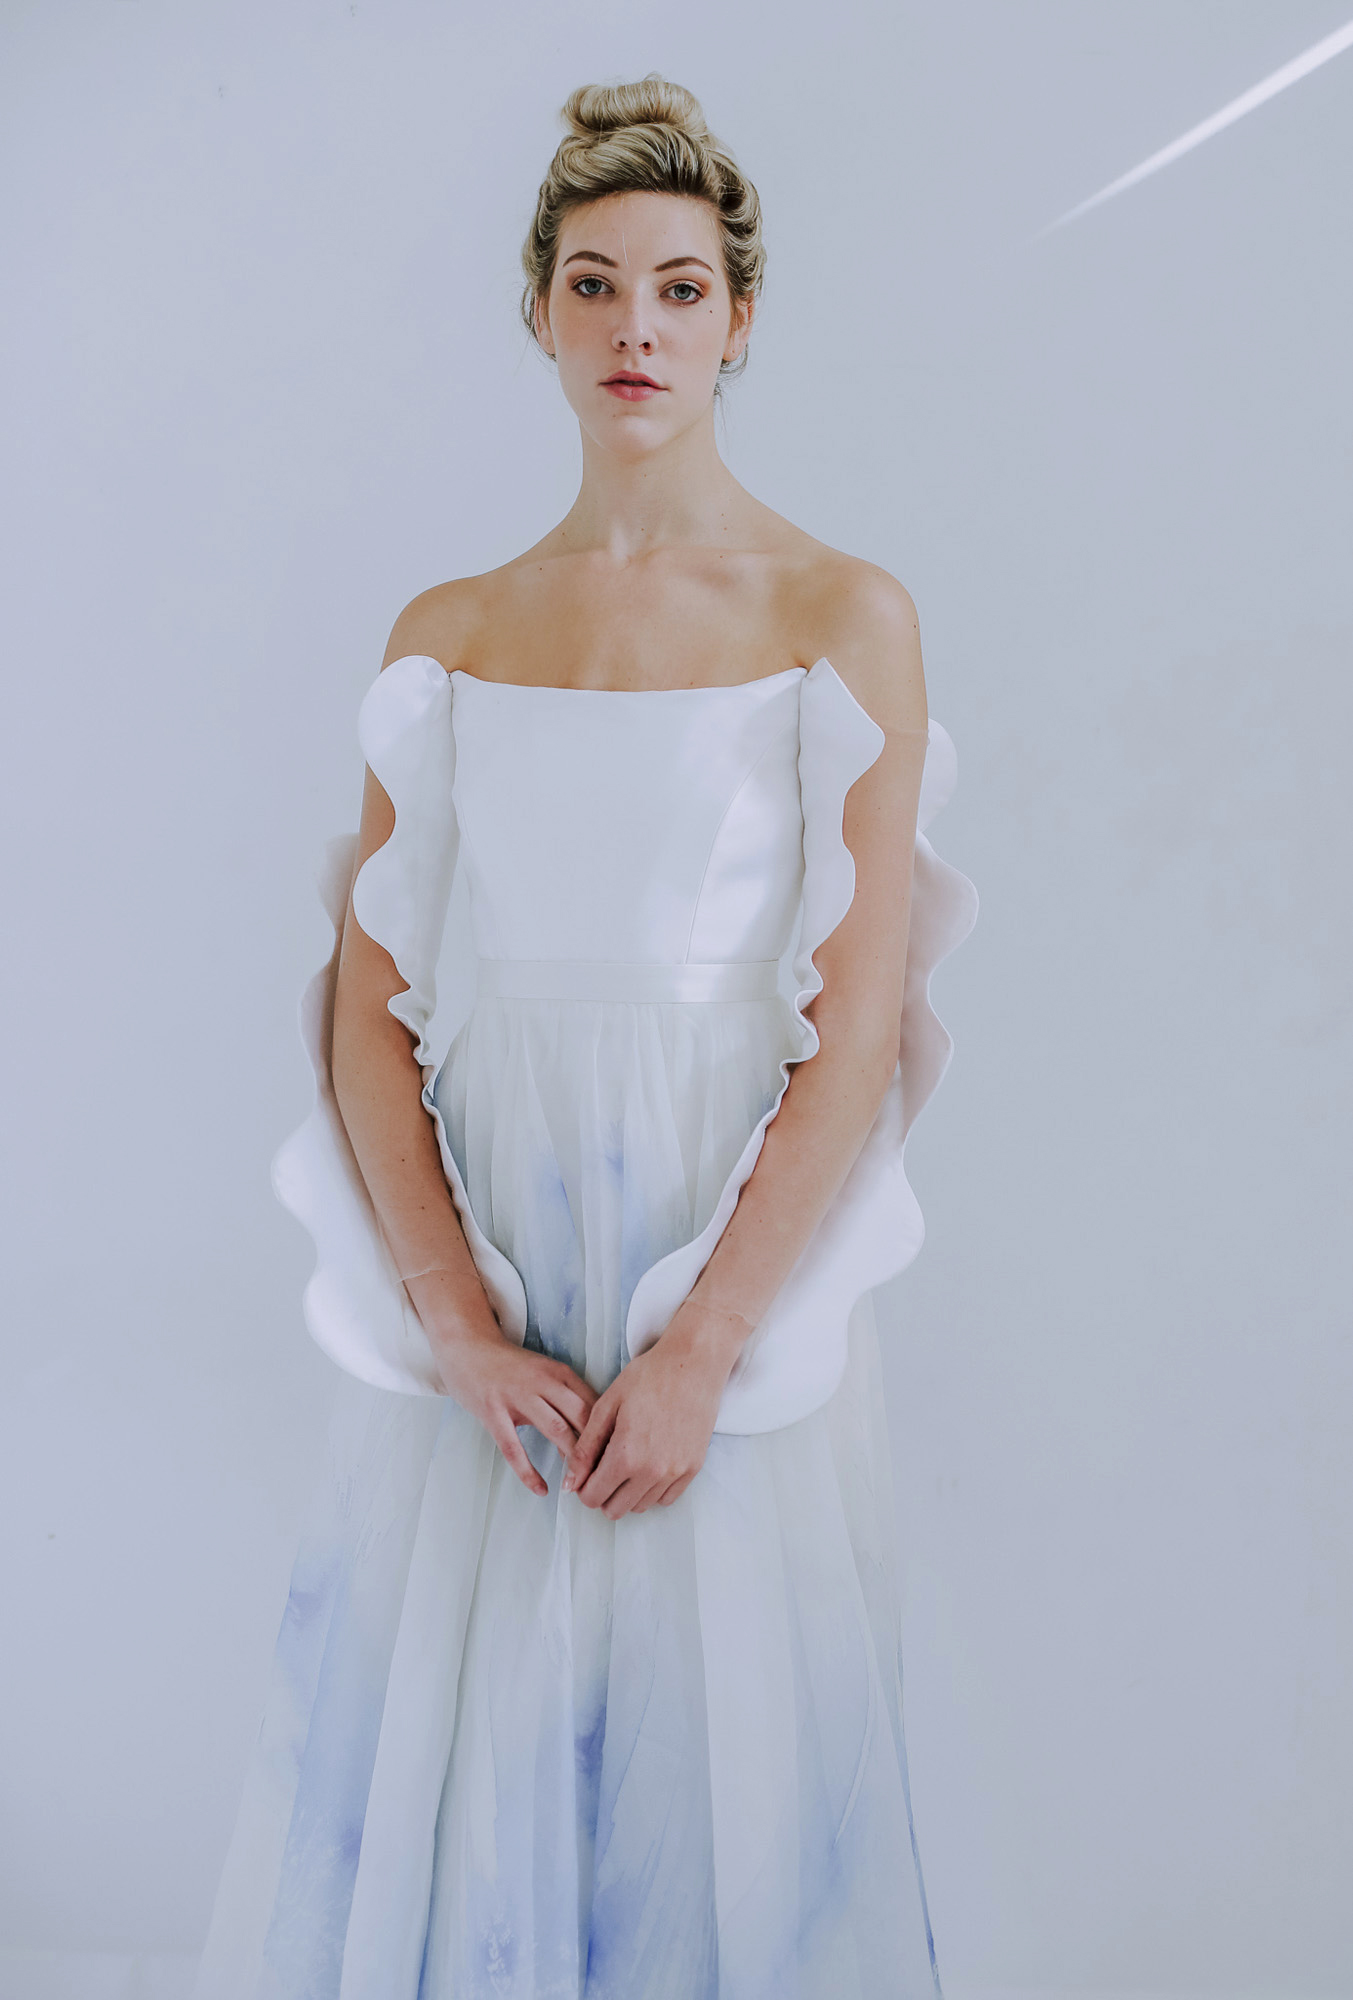 Leanne Marshall strapless wedding dress with blue accents fall 2019